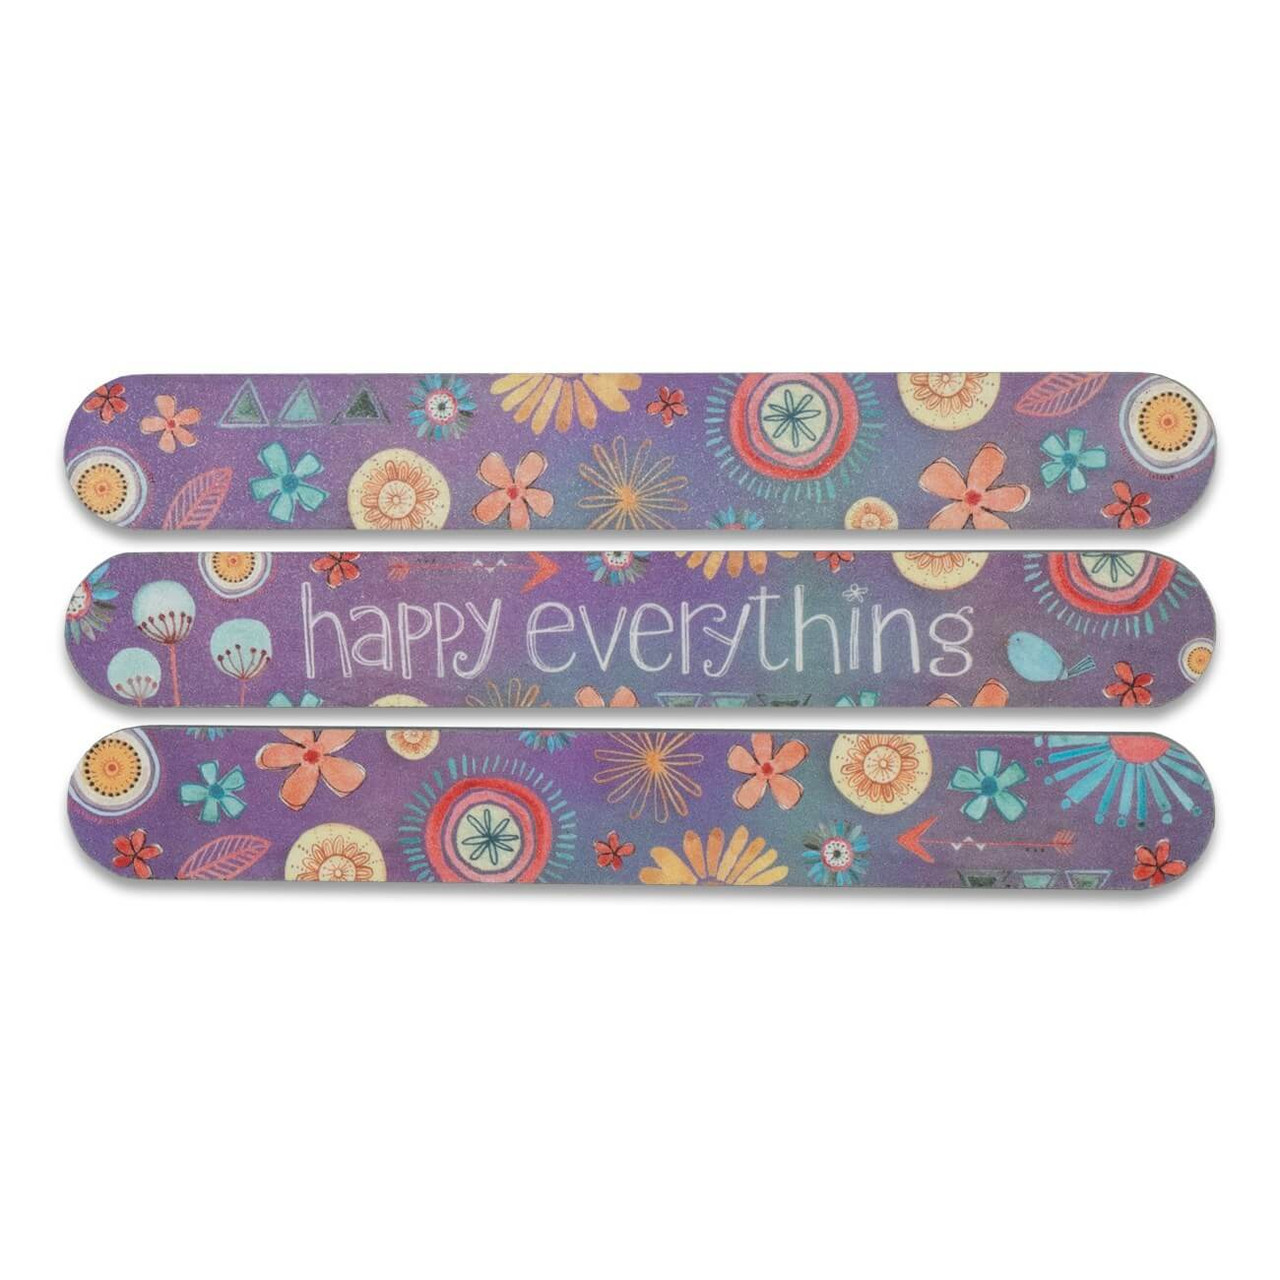 """Salon-style emery boards come in a 3-pack variety of fun, floral artwork and colors with a sweet inspirational message on the center board. The longer length and foam make them comfortable for the hand, and perfect for filing nails on both hands and feet. Featuring artwork by Katie Doucette.  Just be awesome sentiment on both sides Individual board measures 1"""" wide x 6"""" long 3 boards per pack 2-sided high quality abrasive material Cushioned foam center Clear protective sleeve"""